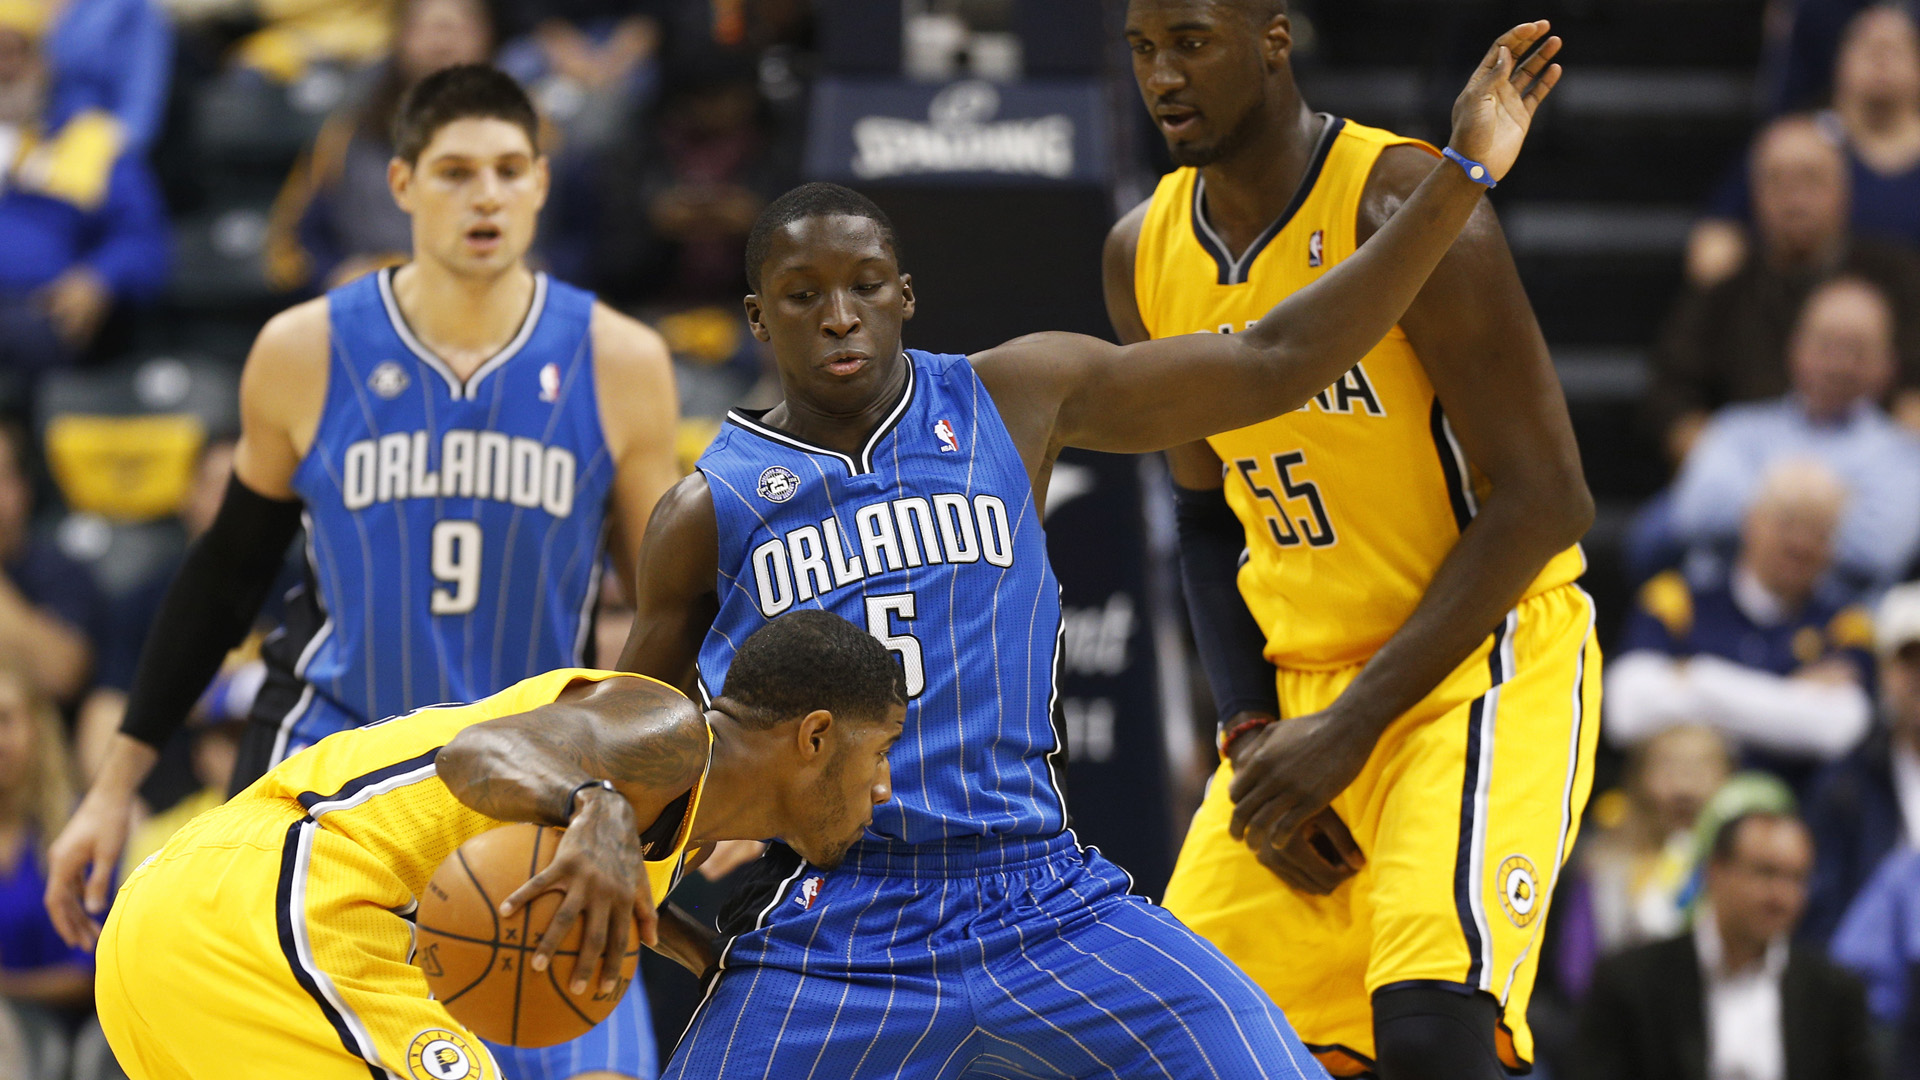 Paul-george-left-is-guarded-by-victor-oladipo_ghfl7wszzxlj125nzvvuliequ